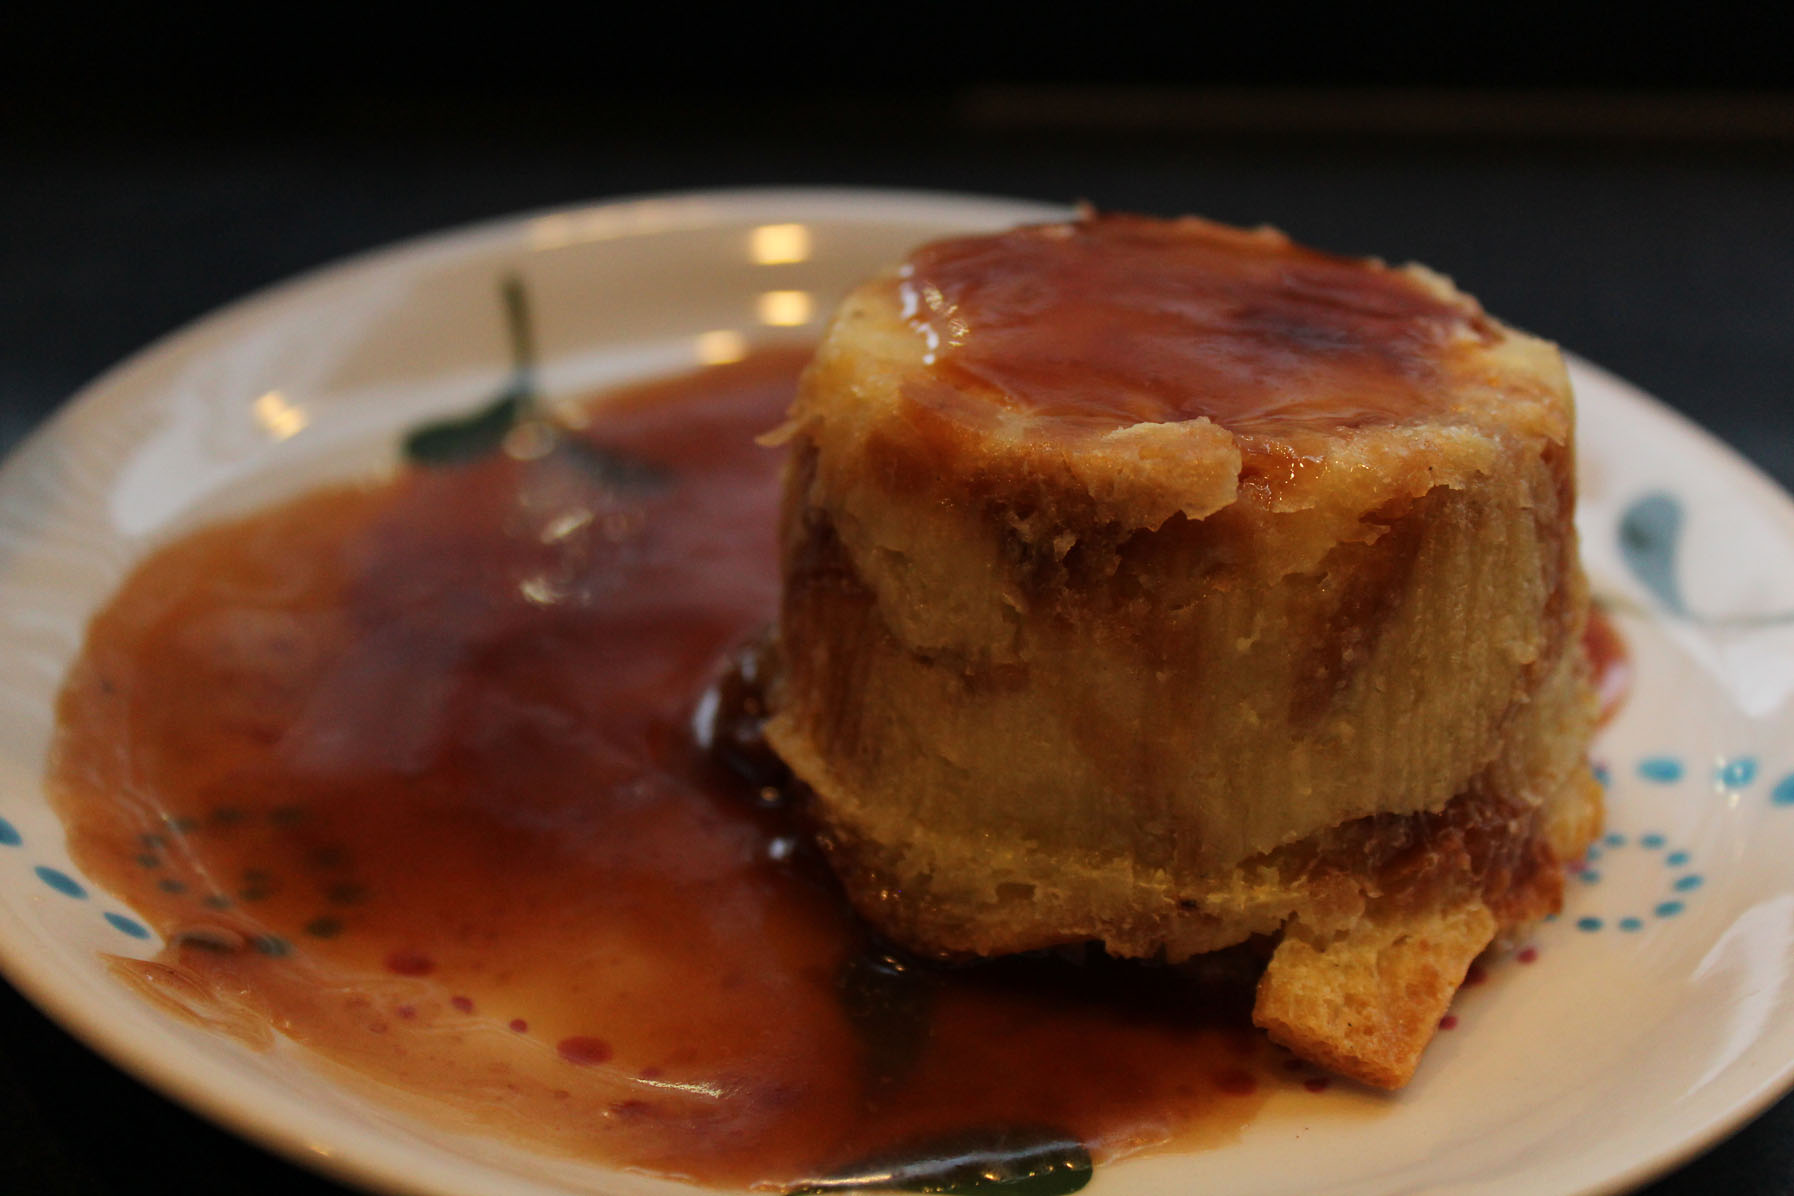 Bread & Butter Pudding with Toffee Sauce $4.00 [Photo courtesy: Kaori Fujishima]